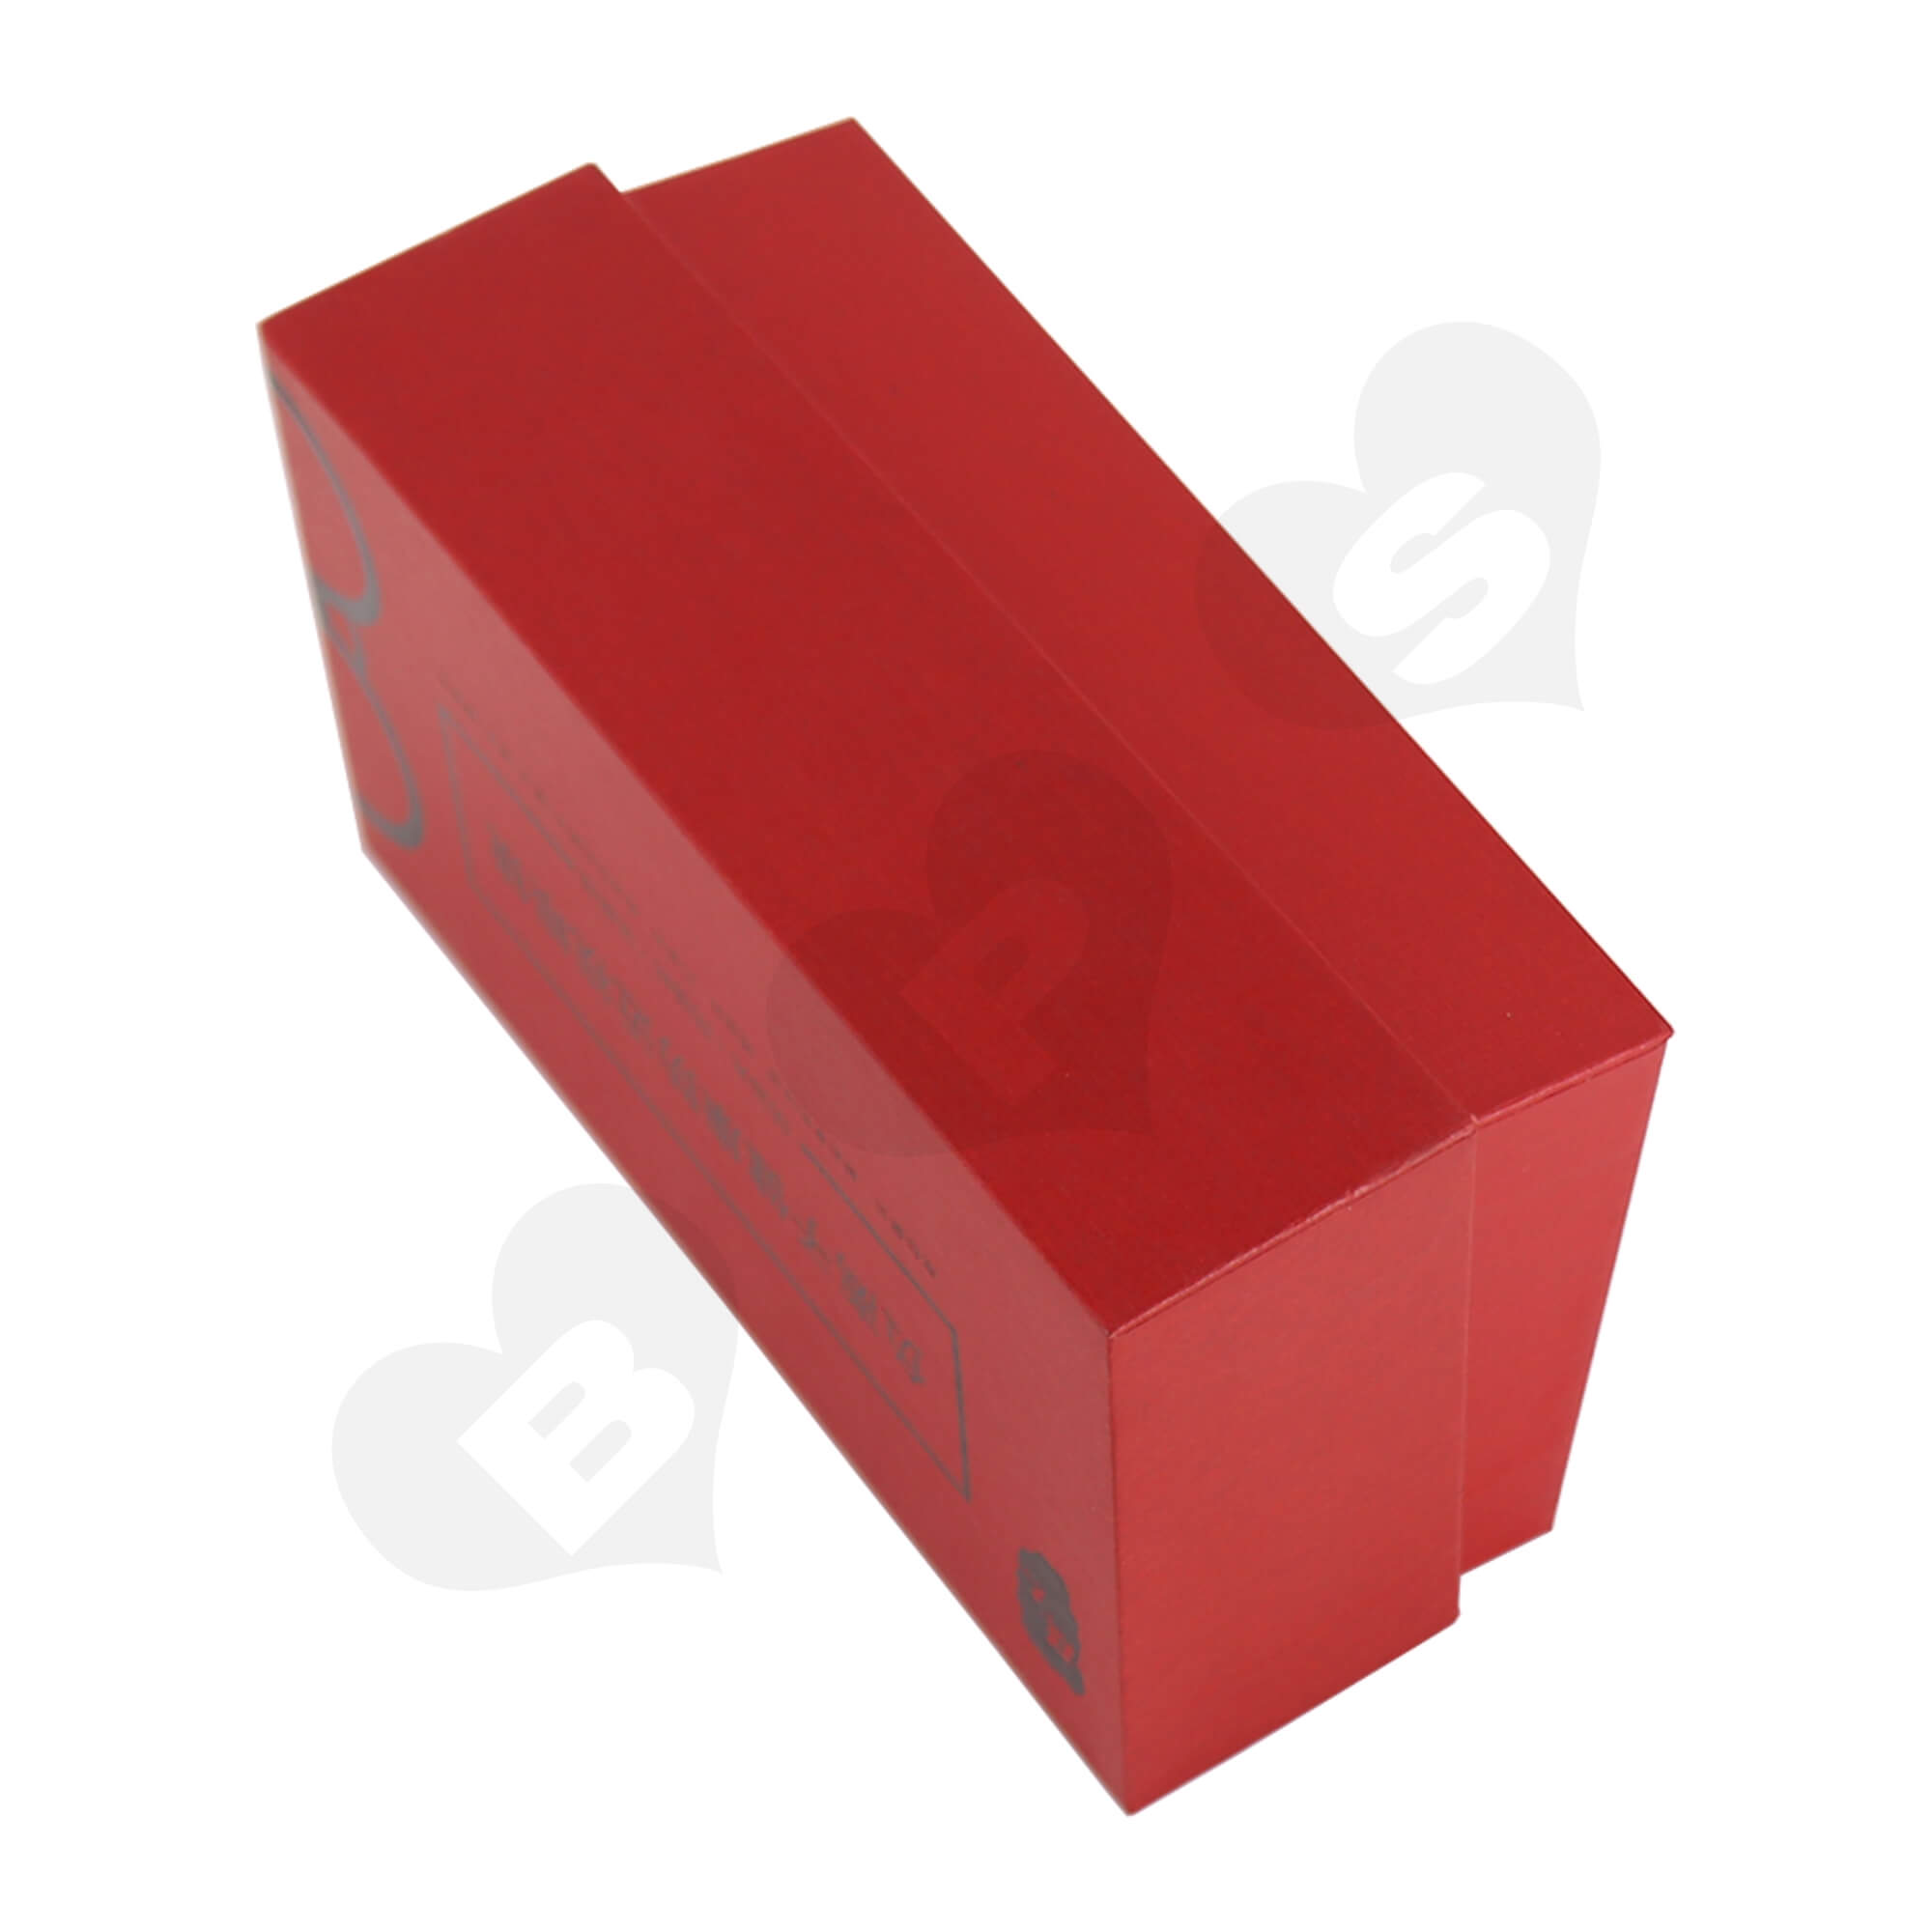 Cardboard Foil Stamping Rigid Set-Up Box For Packing Anti-Myopia Glasses Side View Five